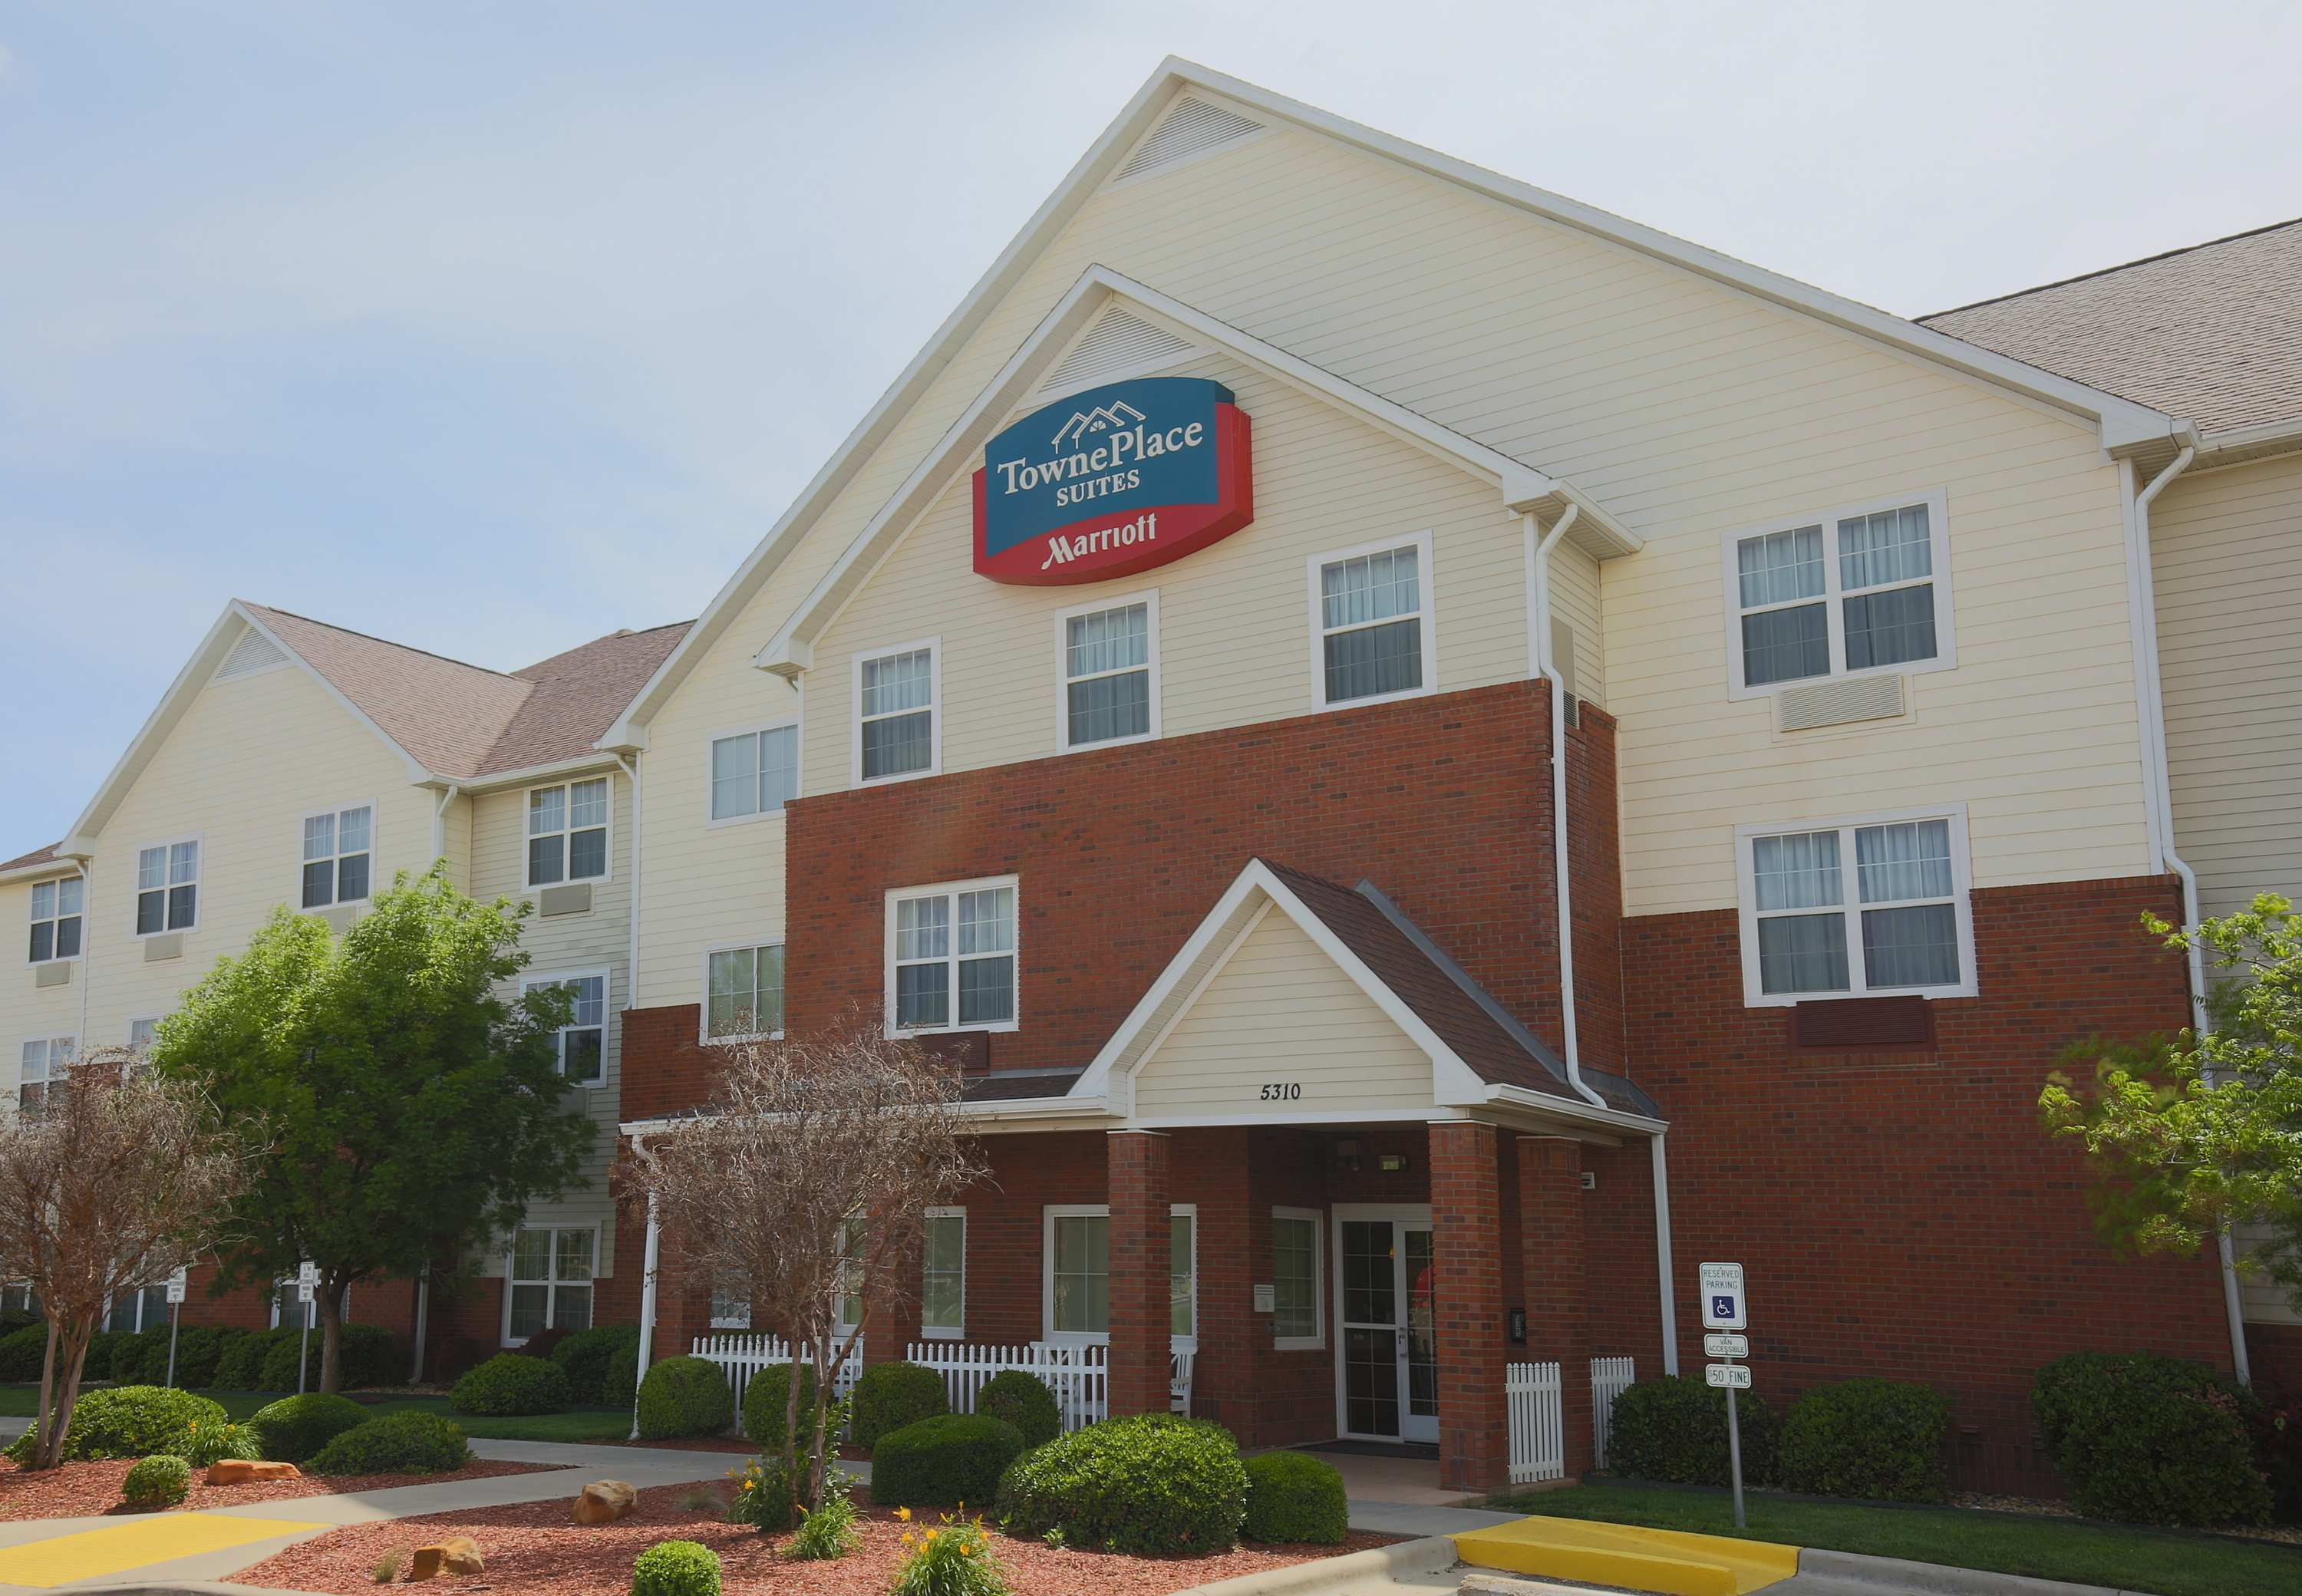 TownePlace Suites by Marriott Lubbock image 10